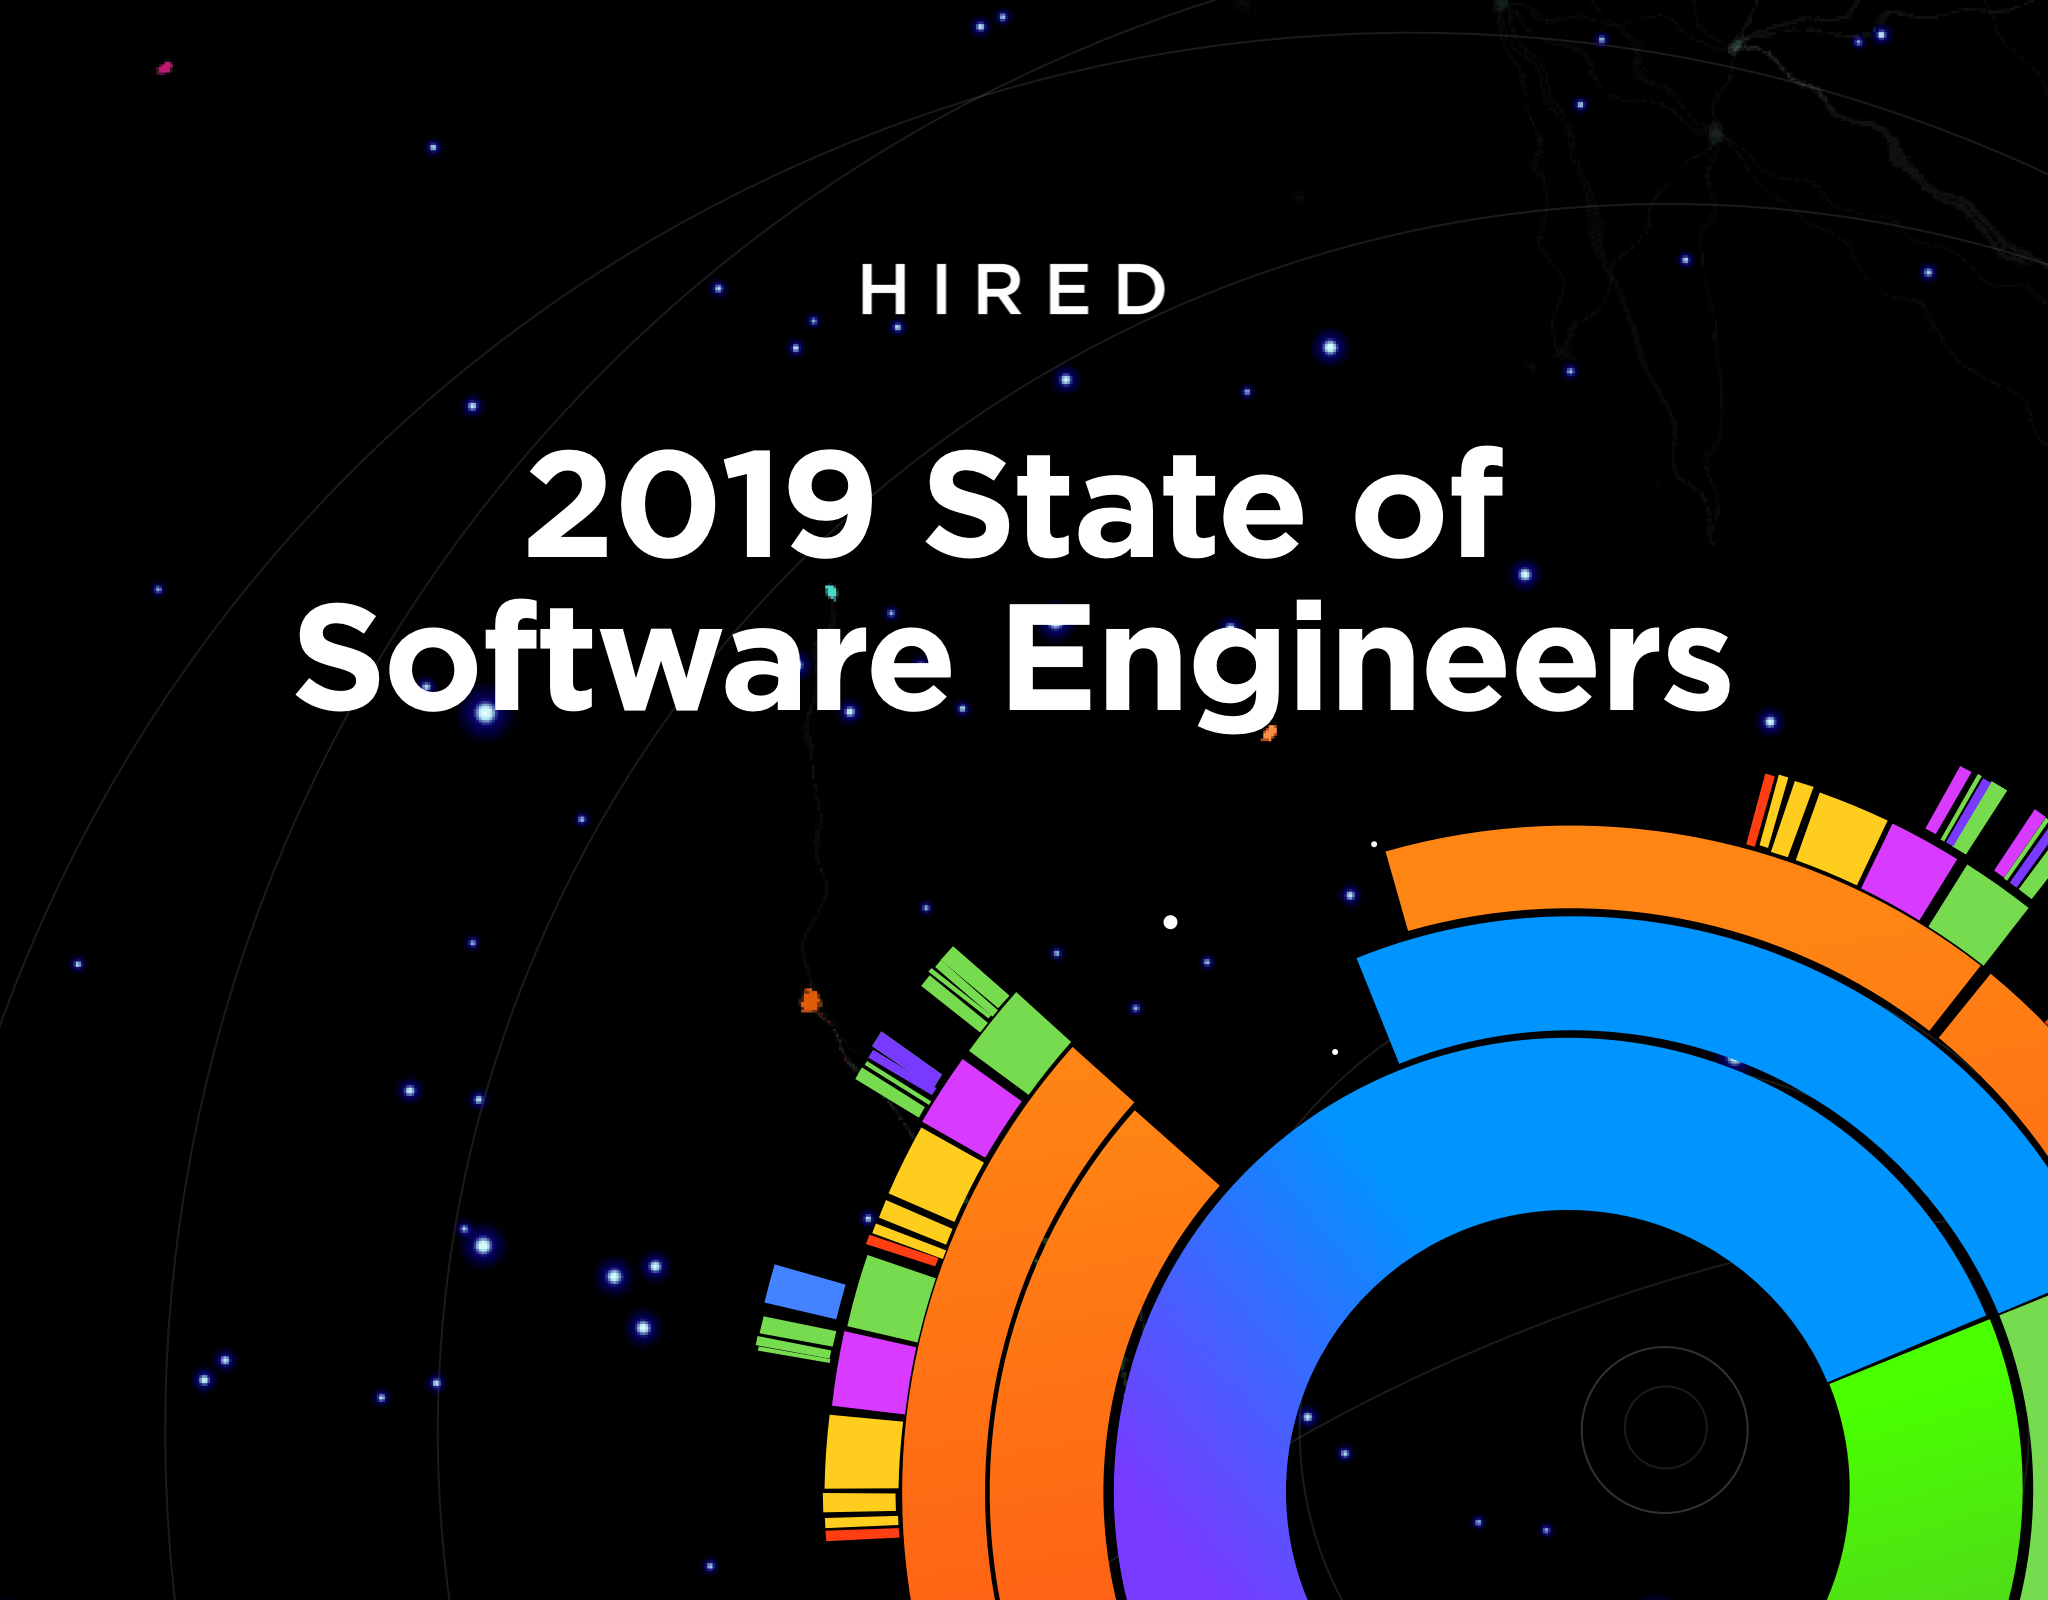 hired-releases-its-2019-state-of-software-engineers-report